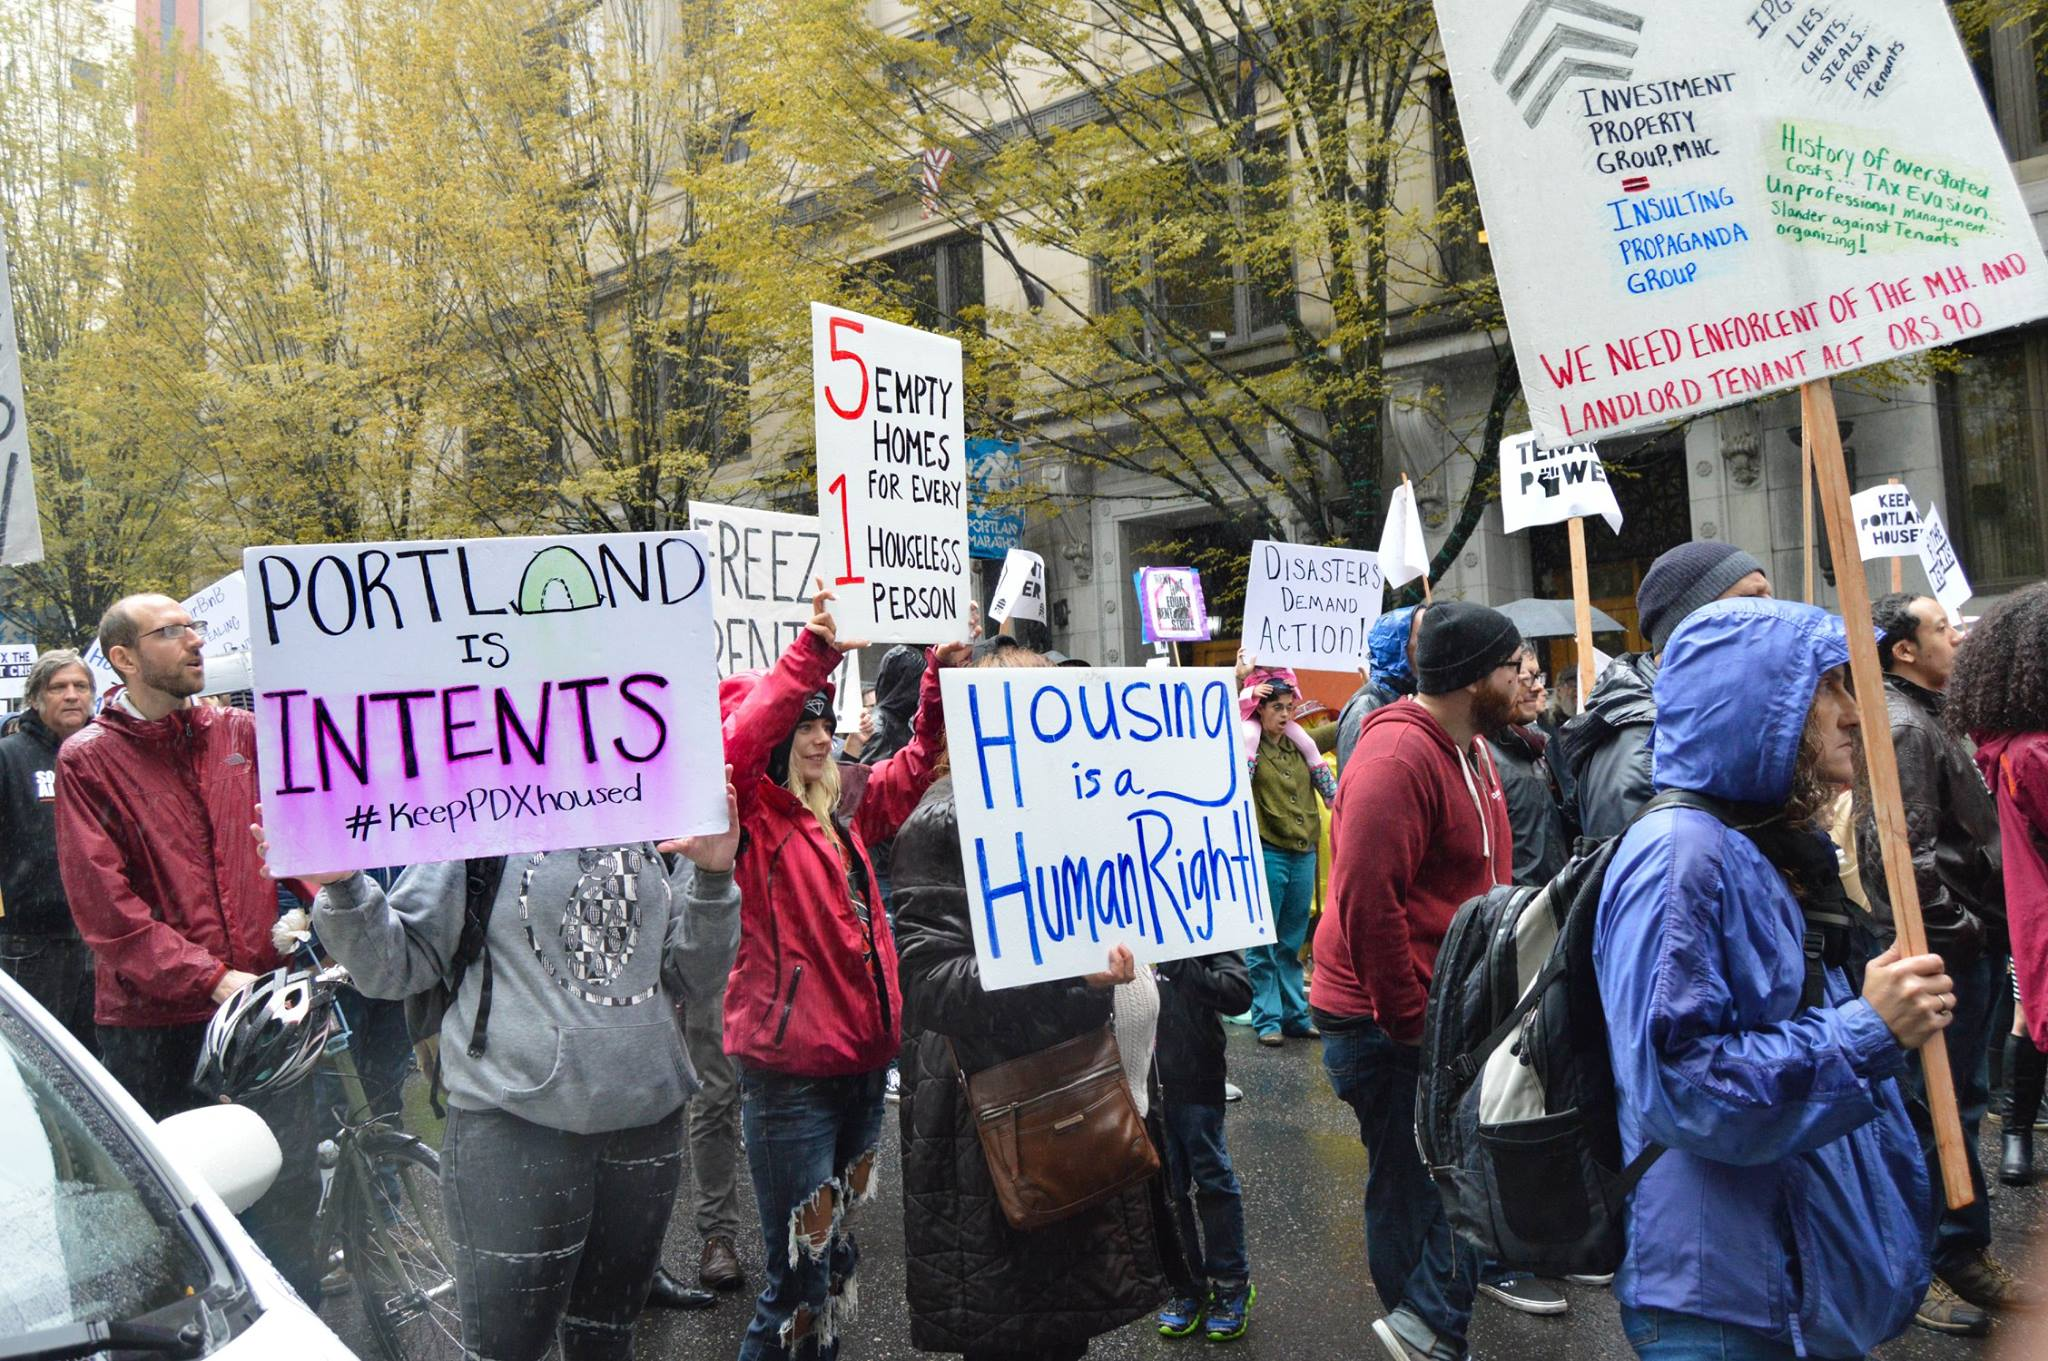 """""""There are five empty homes for every one houseless person."""" This was a rally and march for a rent freeze organized by Portland Tenants United. Photo courtesy of Kathryn Stevens."""